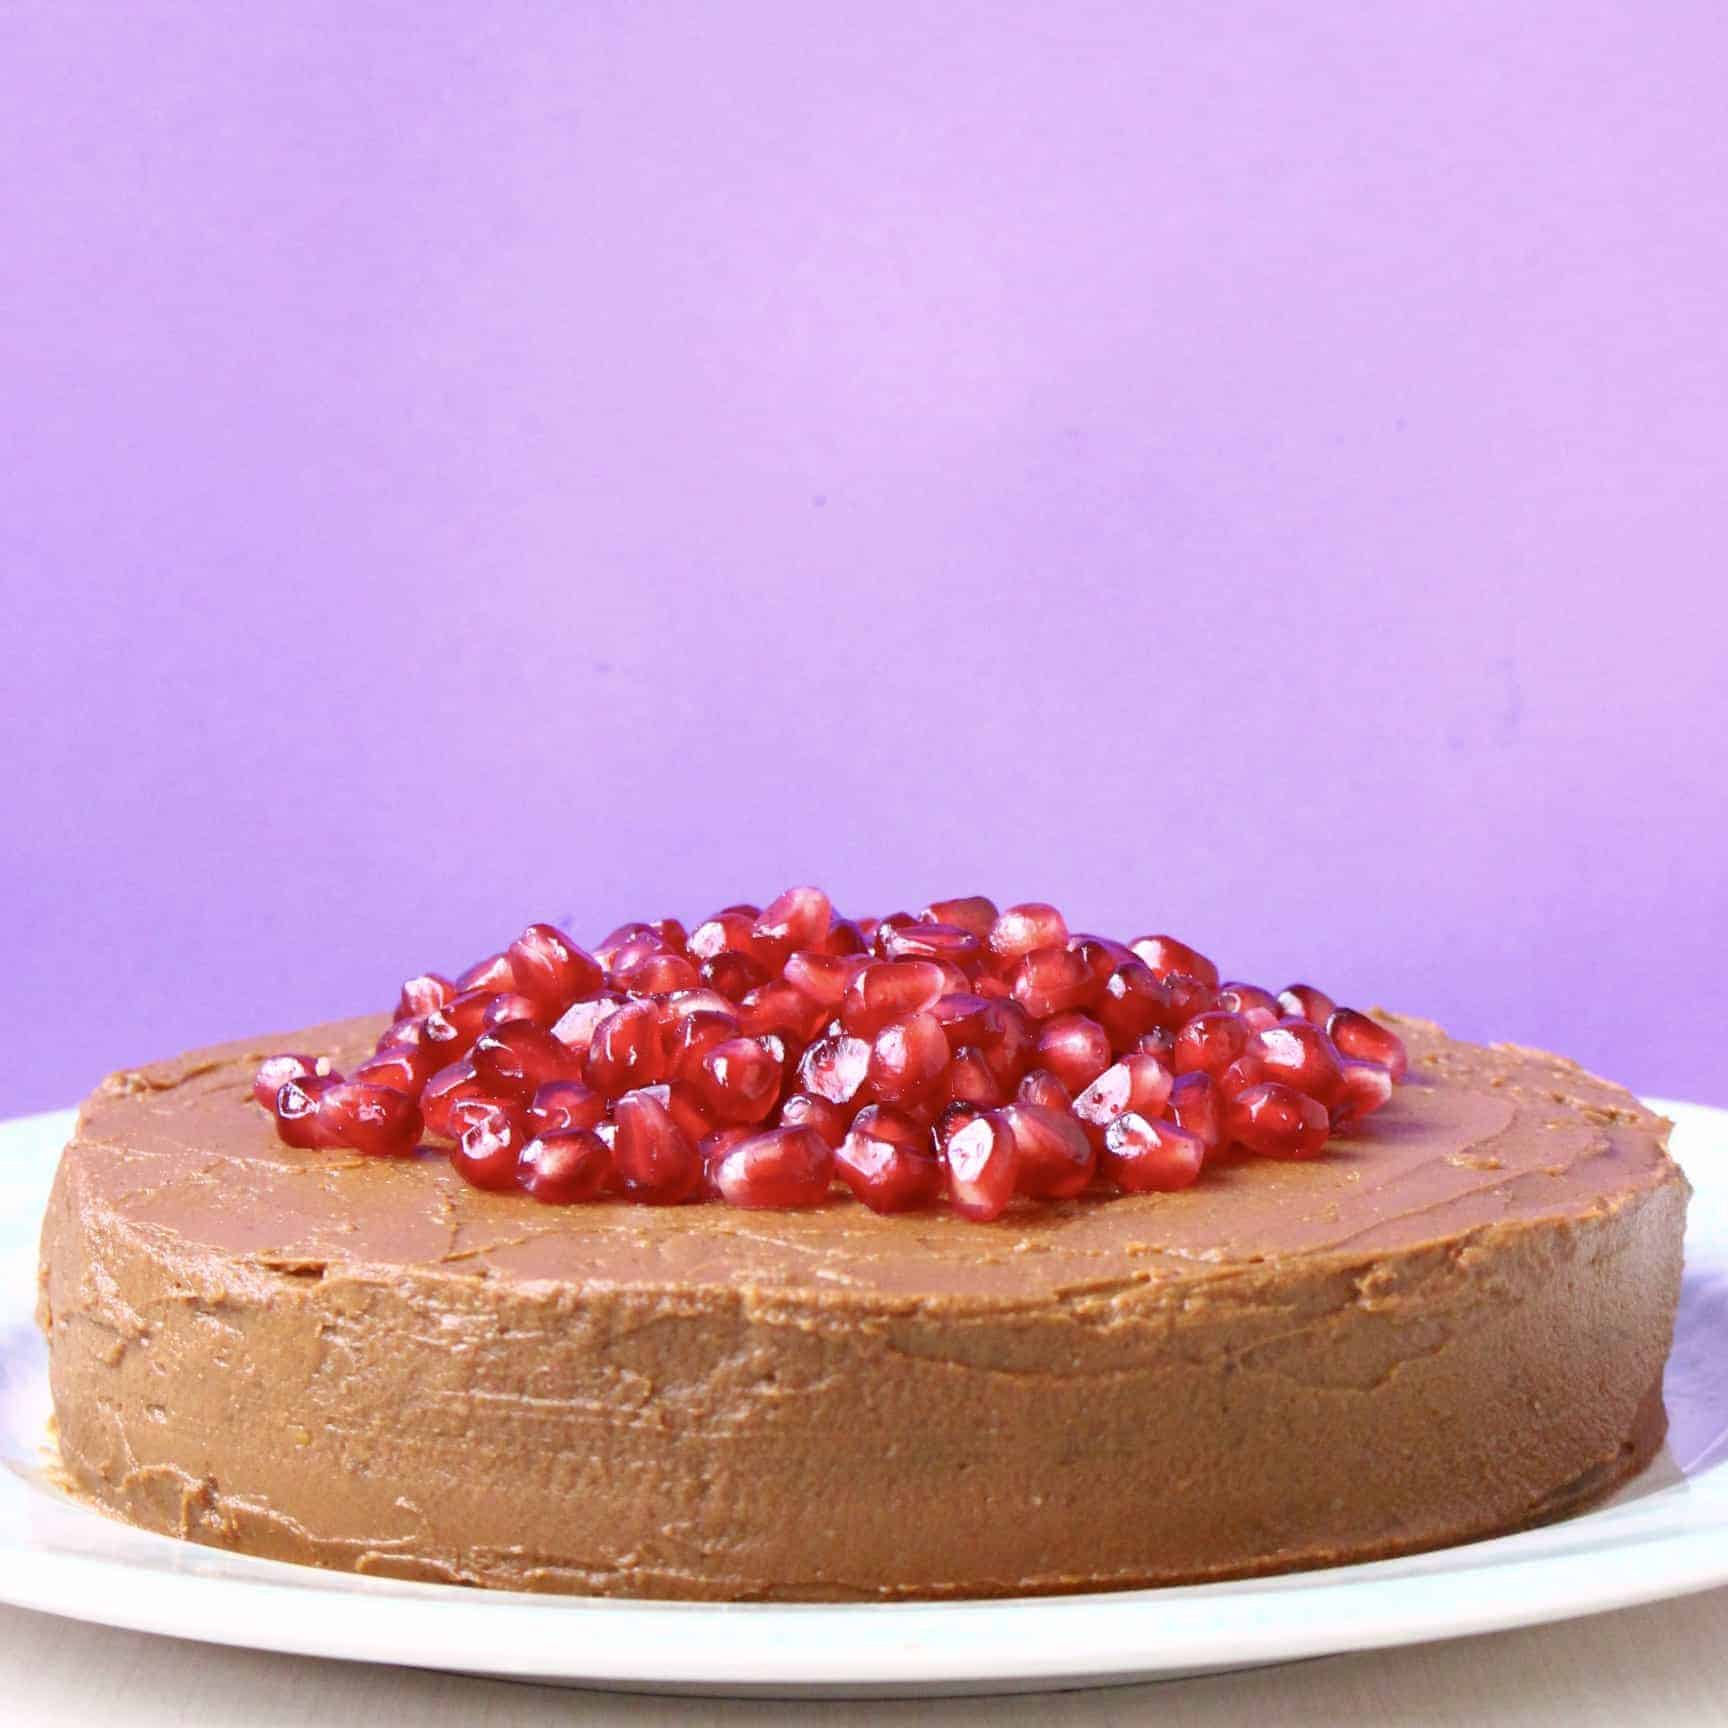 Gluten-Free Vegan Chocolate Sponge Layer Cake